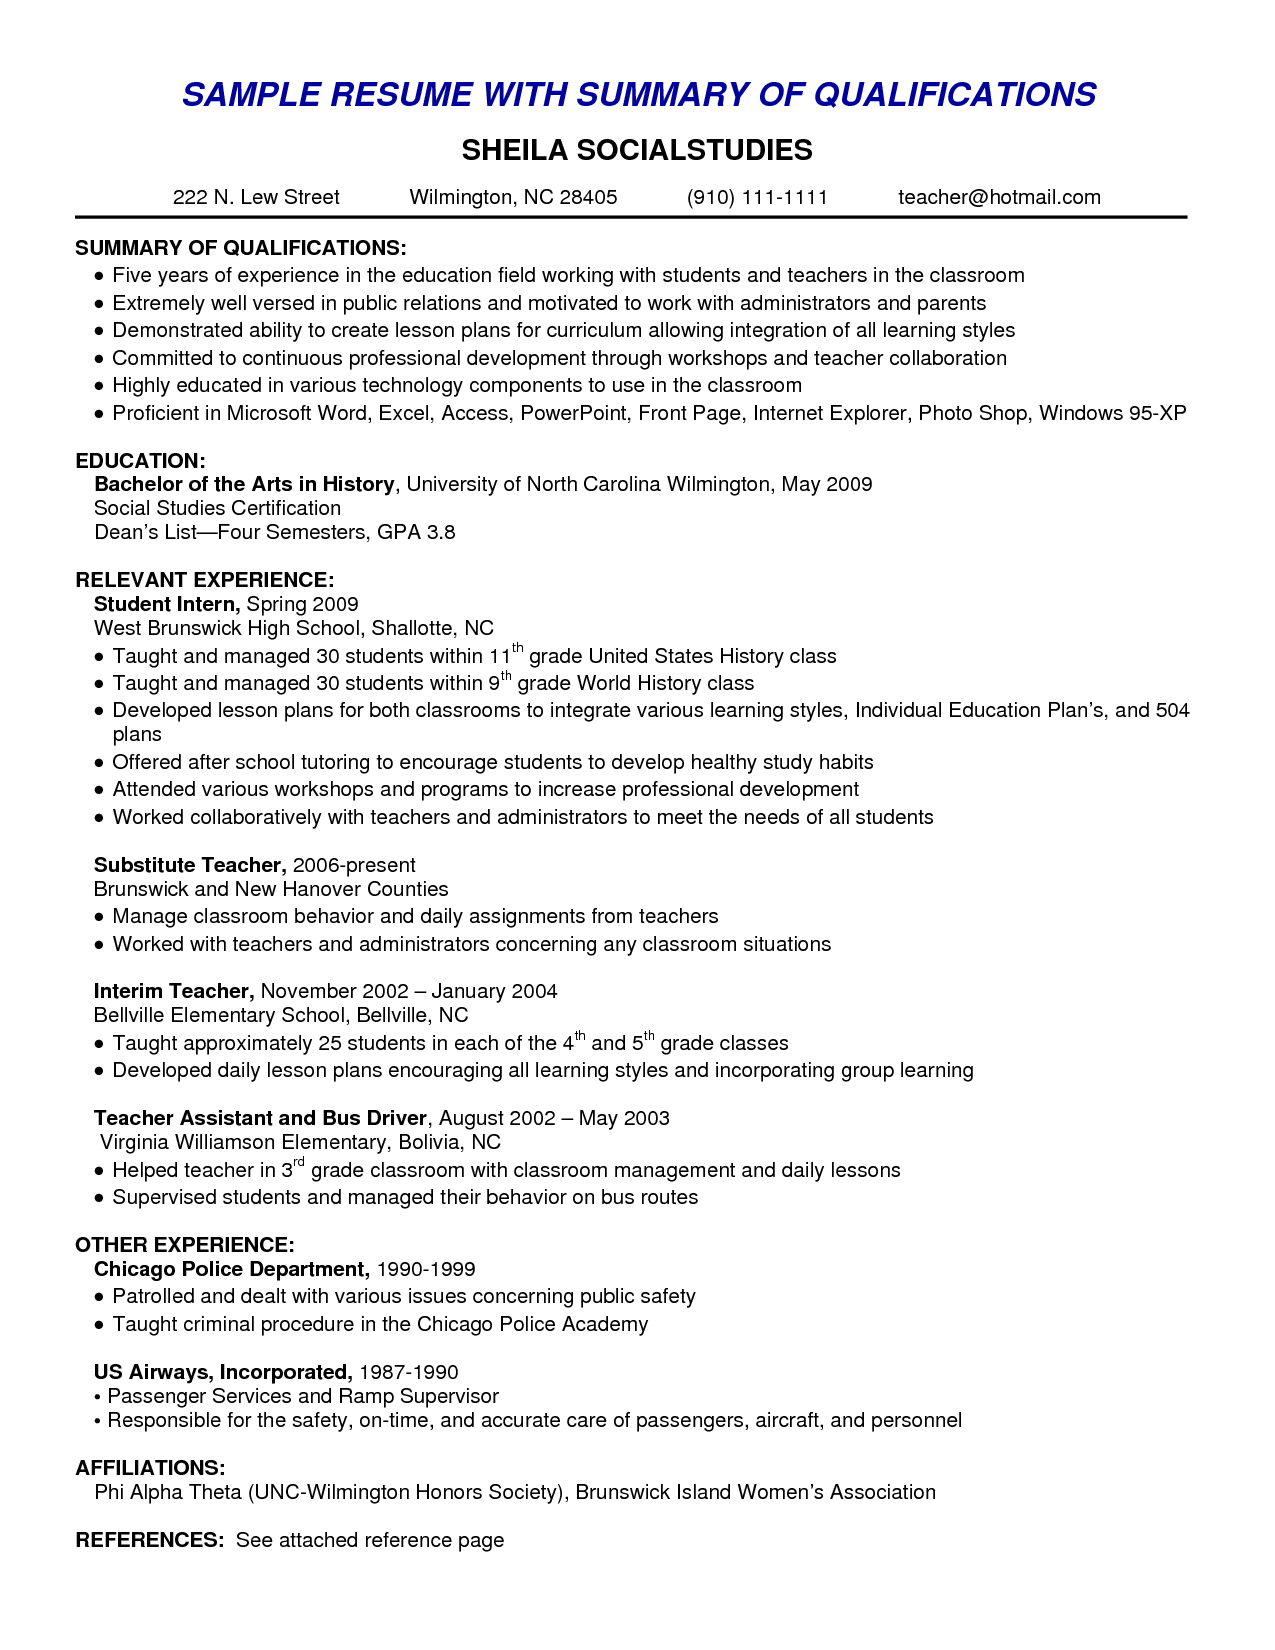 Summary For Resume Examples Free Download Interview Questions And Answers  For Retail Resumes Cover Letter Professional